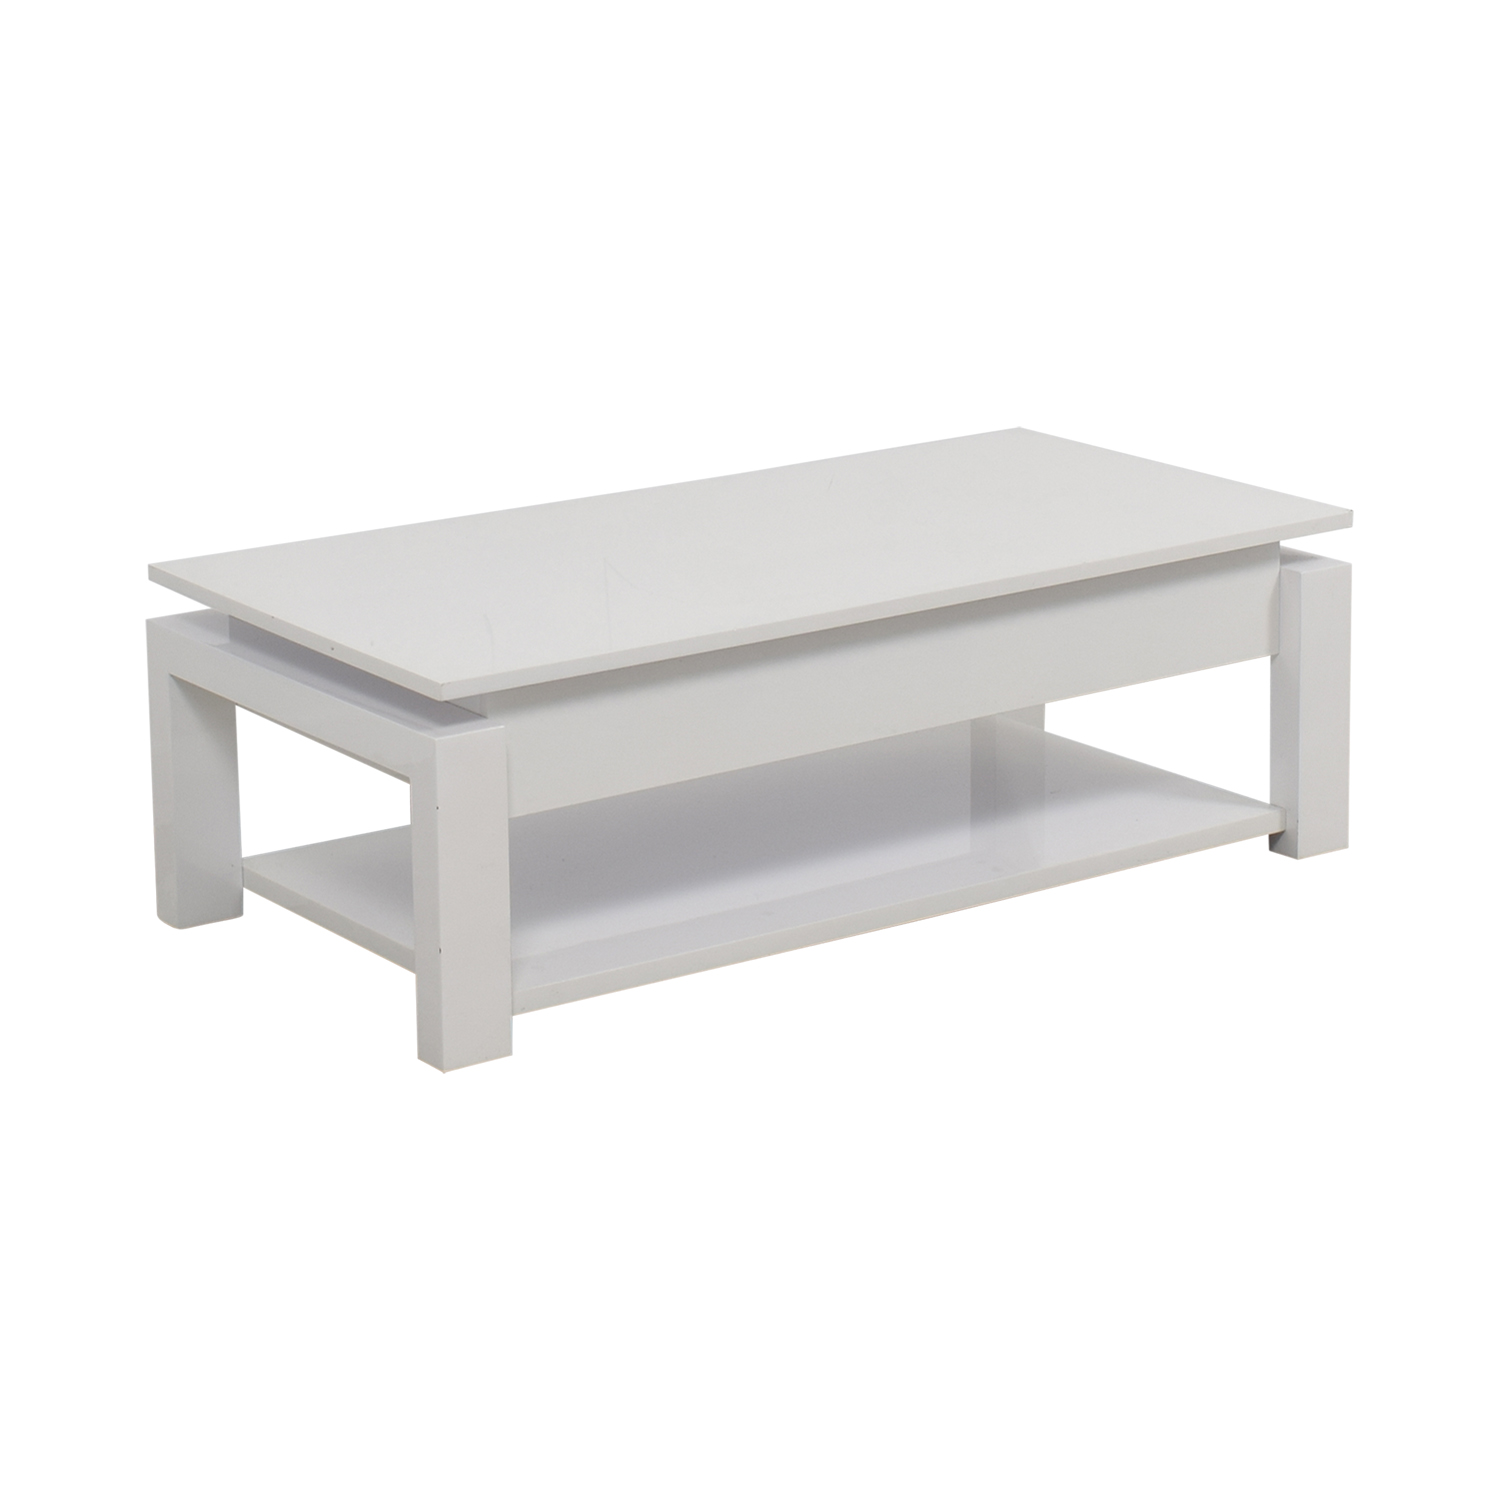 87 Off White Lift Top Coffee Table Tables